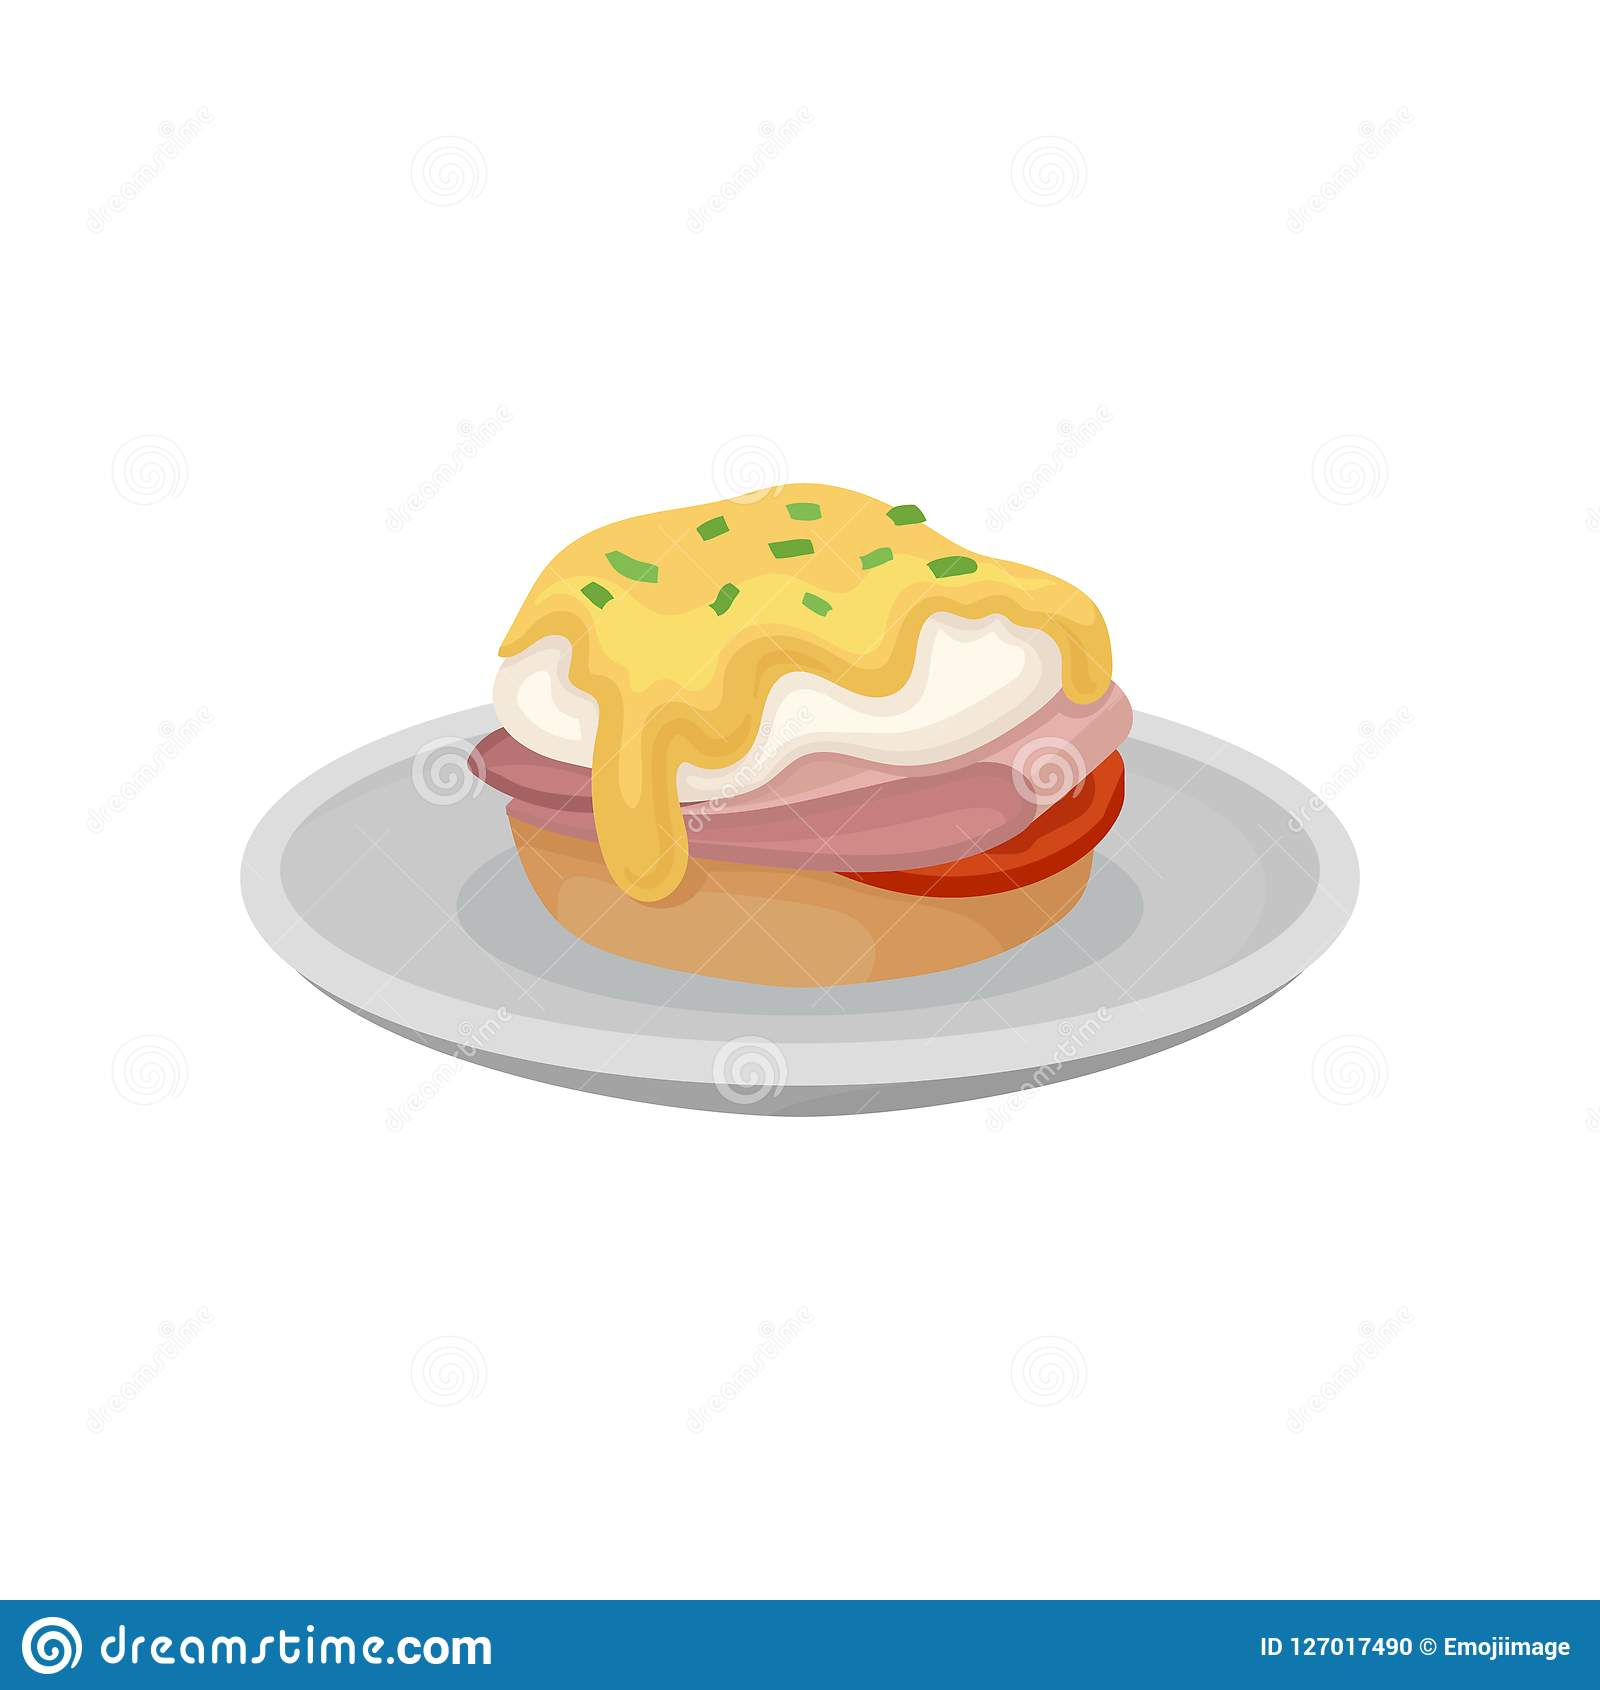 Burger With Fried Egg On A Plate Fresh Nutritious Breakfast Food Design Element For Menu Cafe Restaurant Vector Stock Vector Illustration Of Cook Healthy 127017490